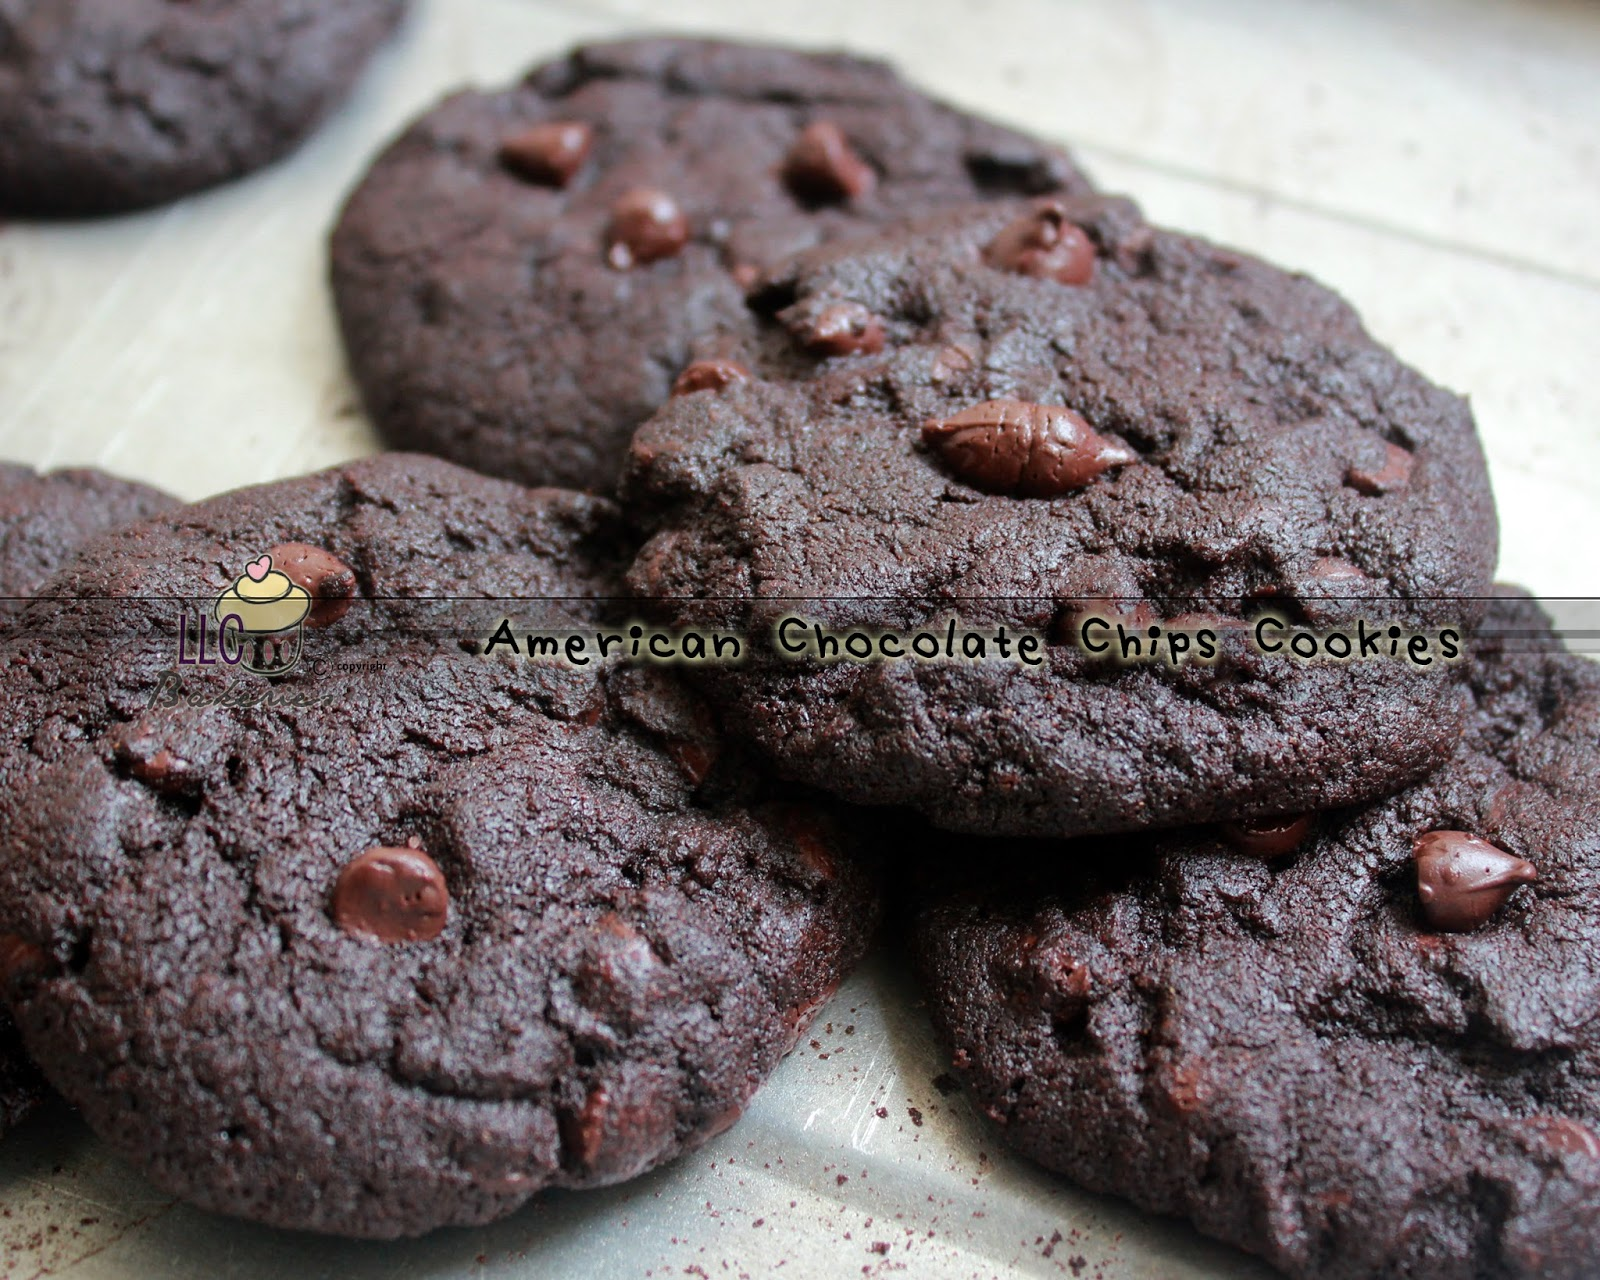 llc bakeries american chocolate chips cookies. Black Bedroom Furniture Sets. Home Design Ideas